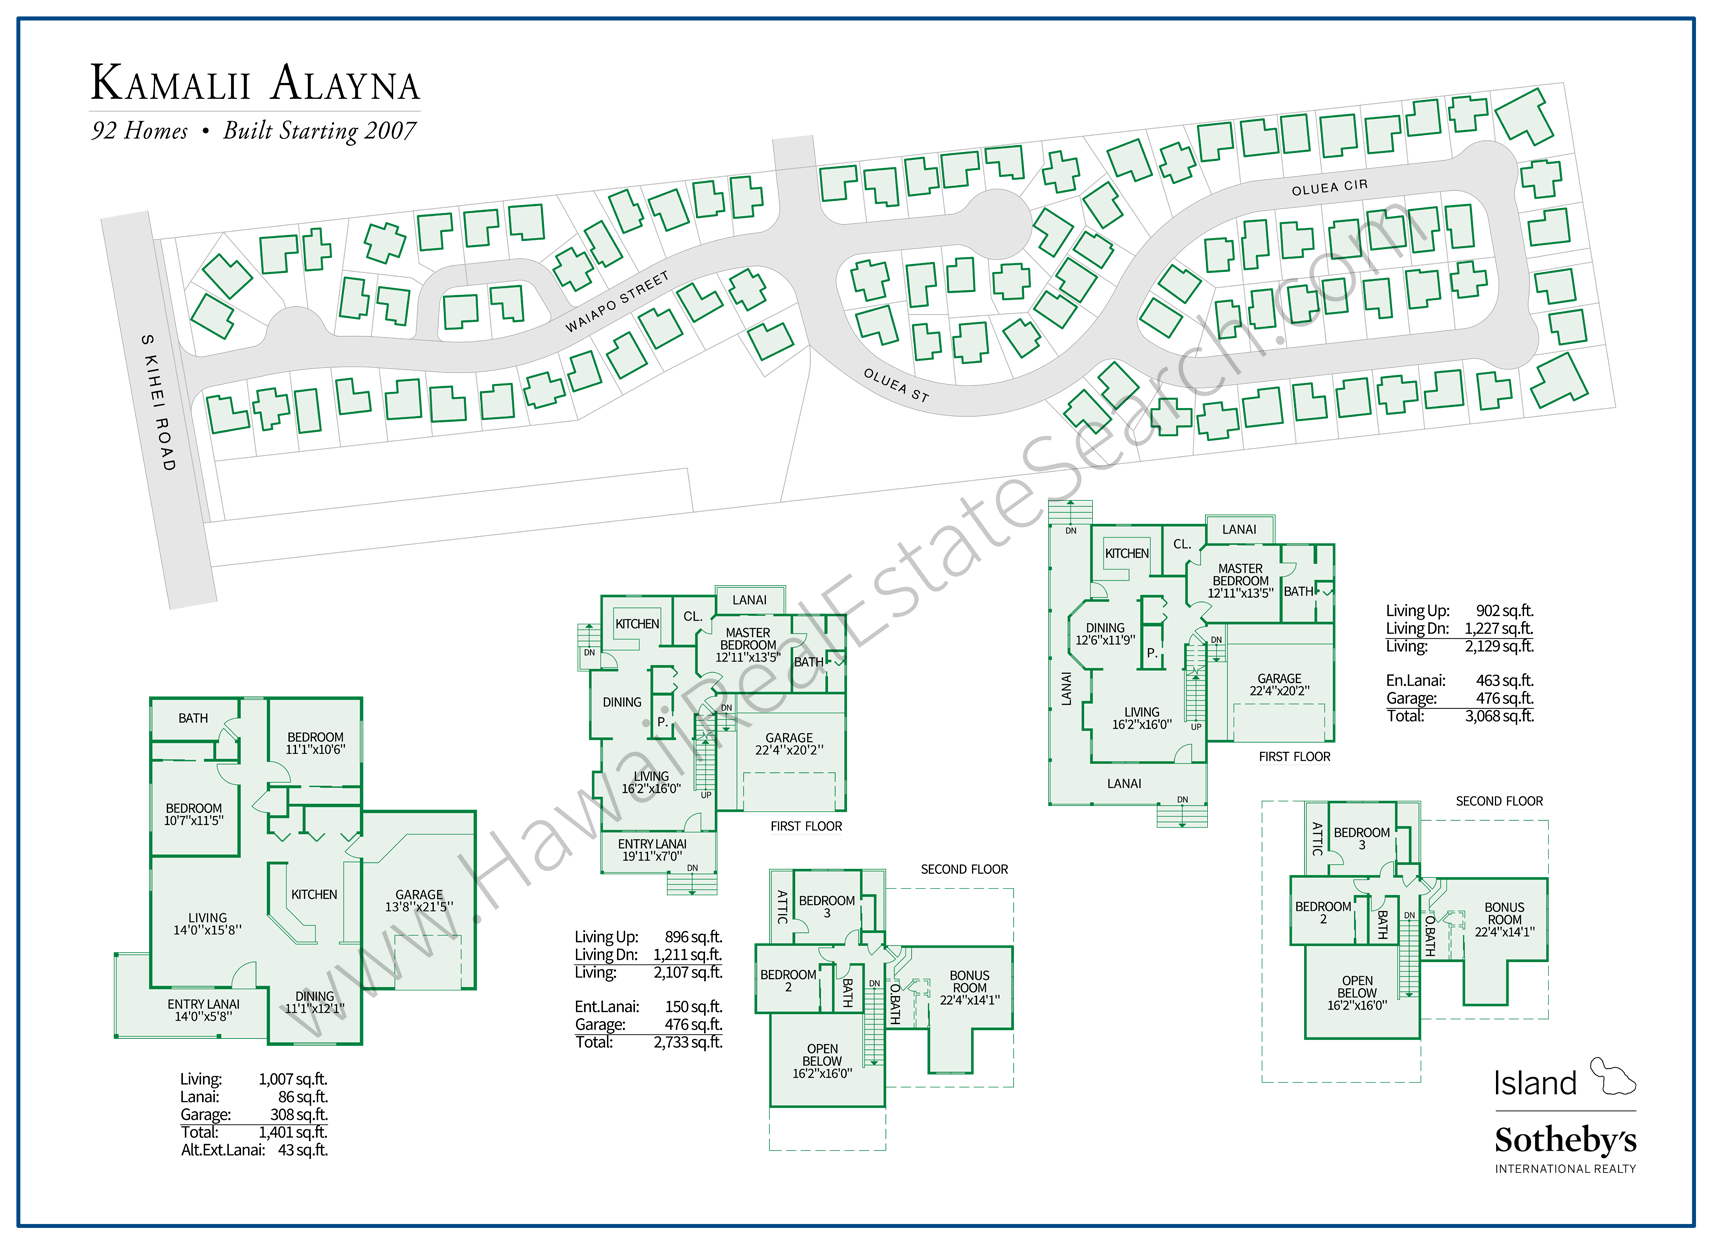 kamalii alayna map and floor plans